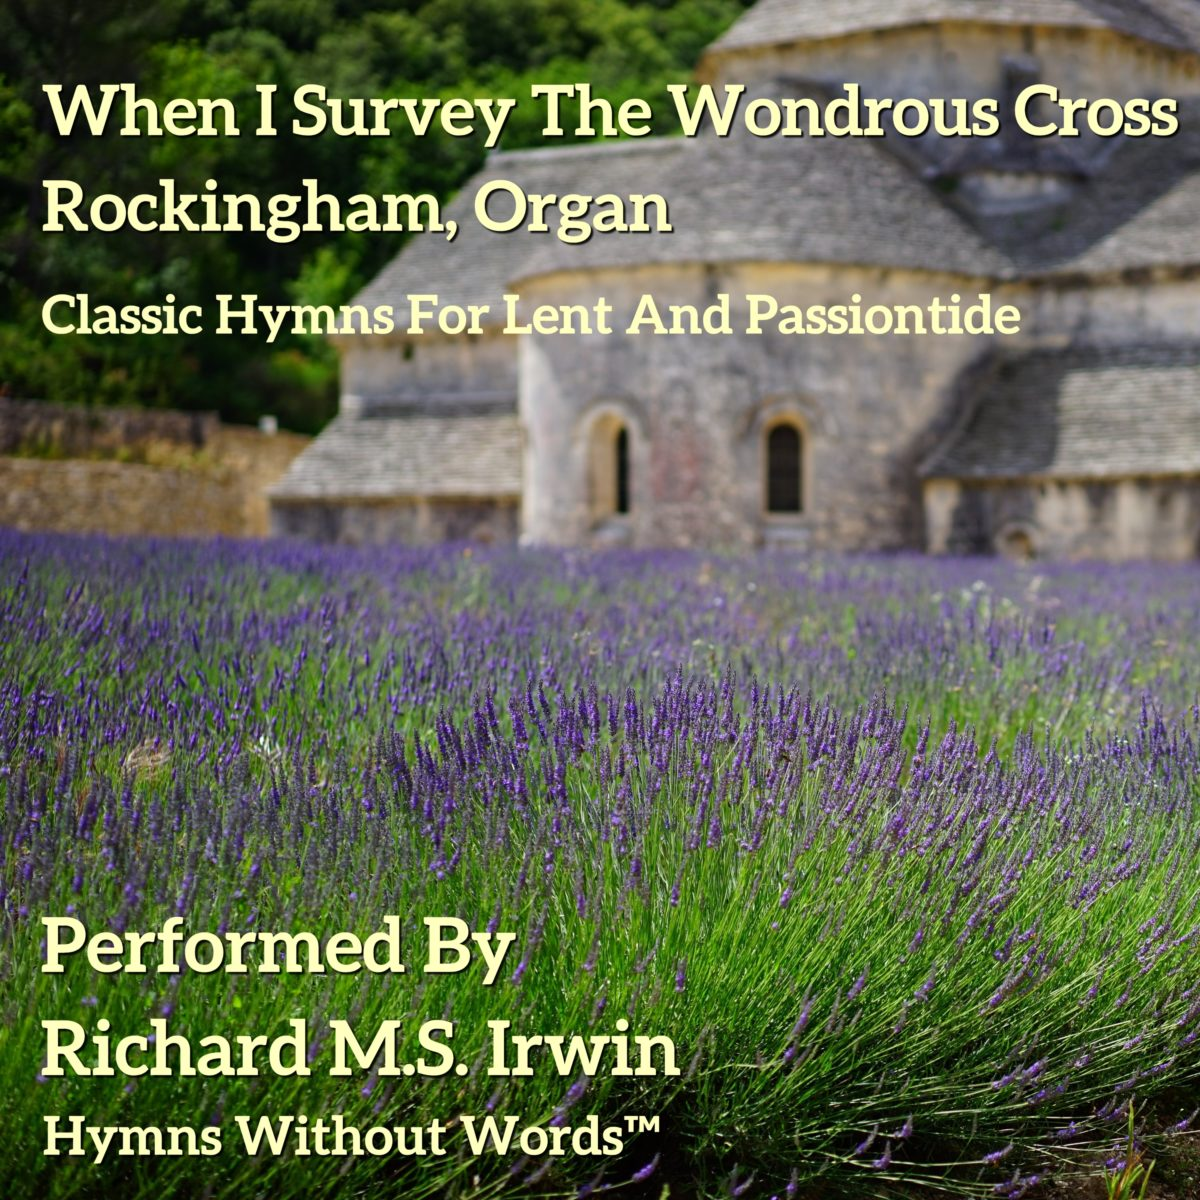 When I Survey The Wondrous Cross (Rockingham, Organ, 4 Verses)